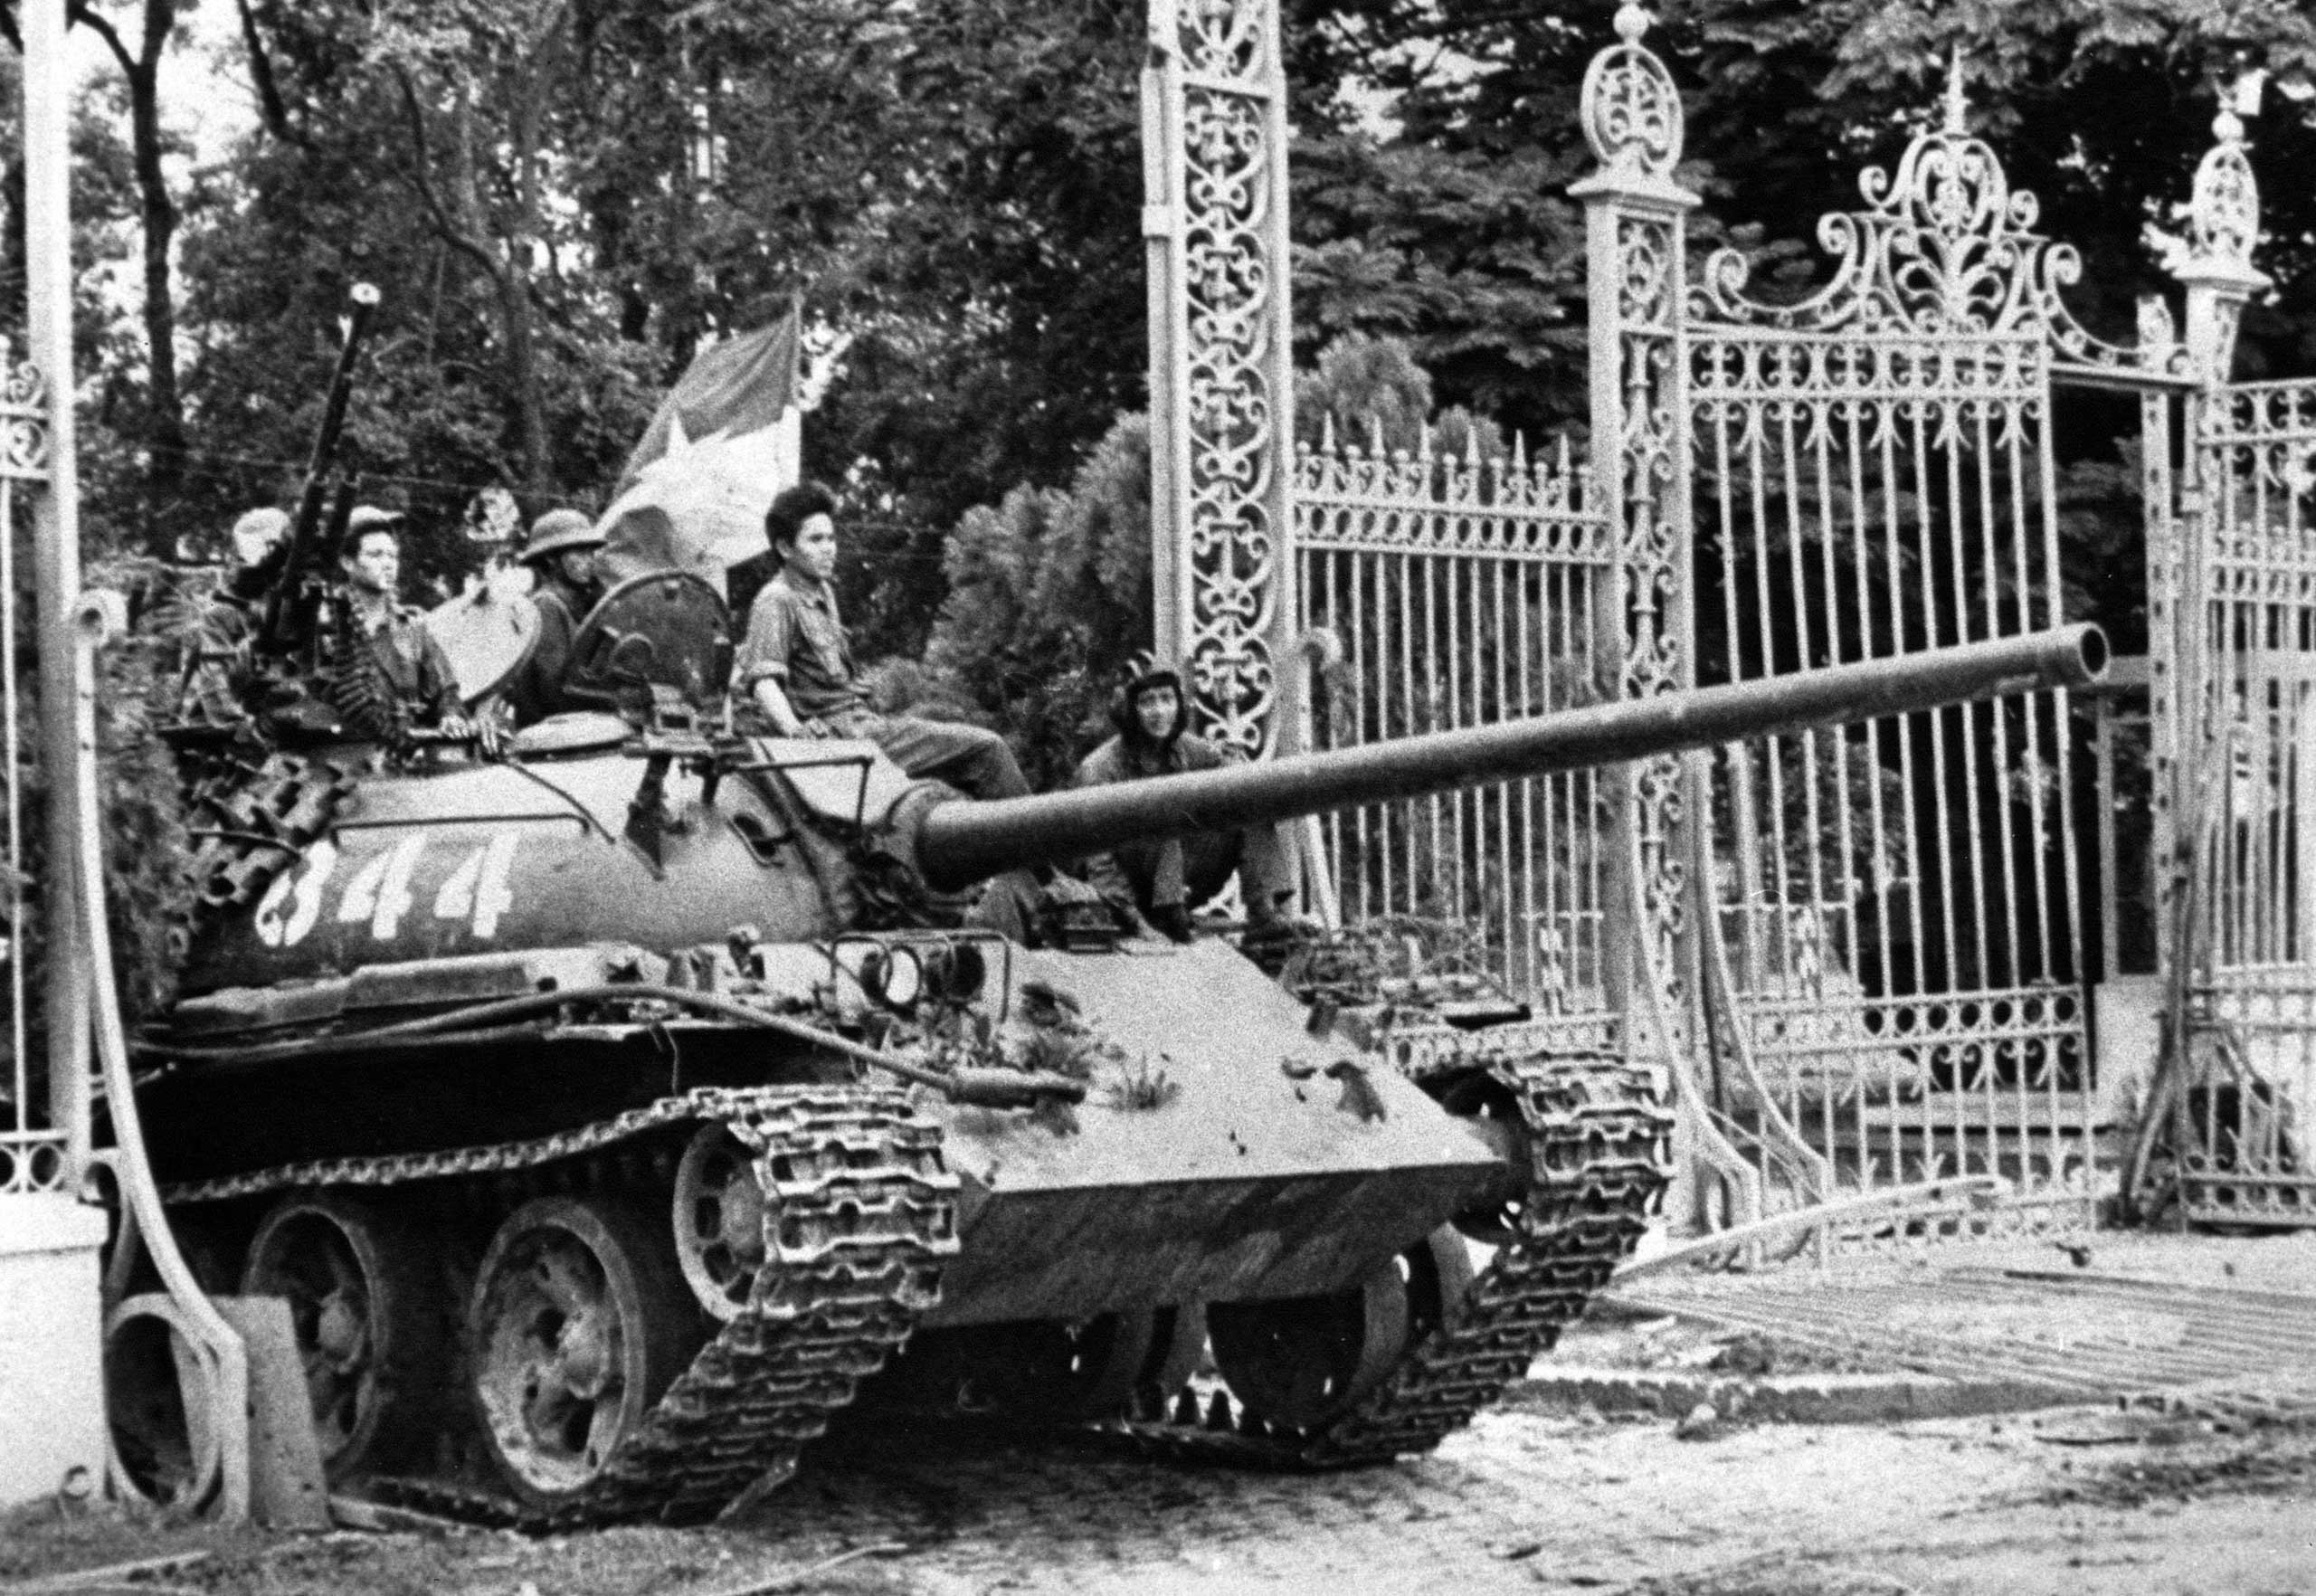 A North Vietnamese tank rolls through the gates of the Presidential Palace in Saigon, signifying the fall of South Vietnam, on April 30, 1975.